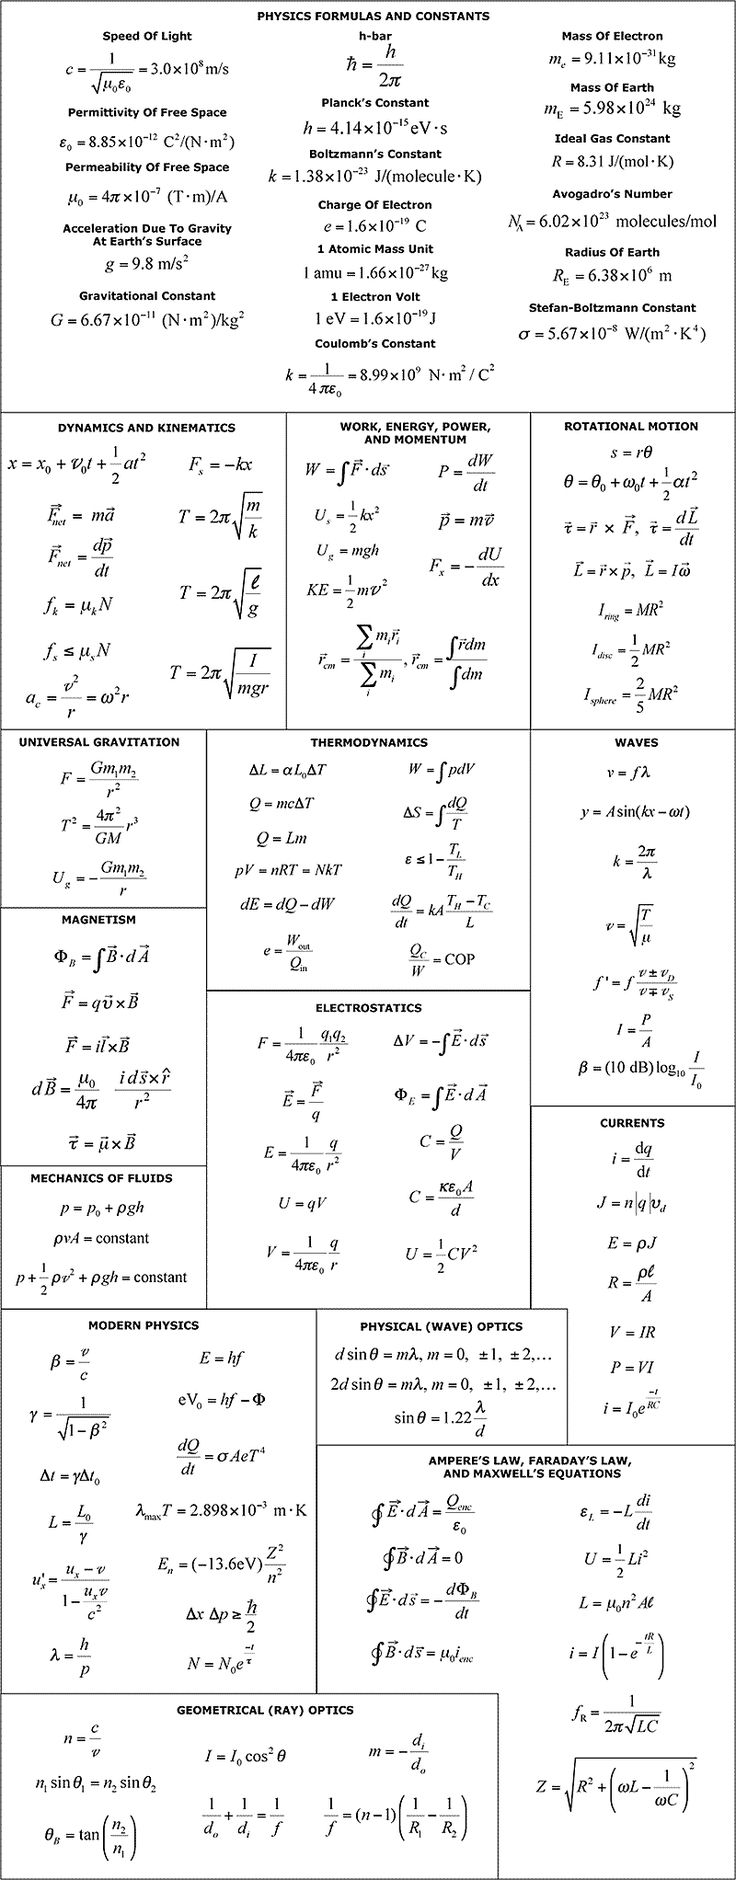 best ideas about physics help physics physics multiple physics formulae chart i never knew would be so helpful for getting through